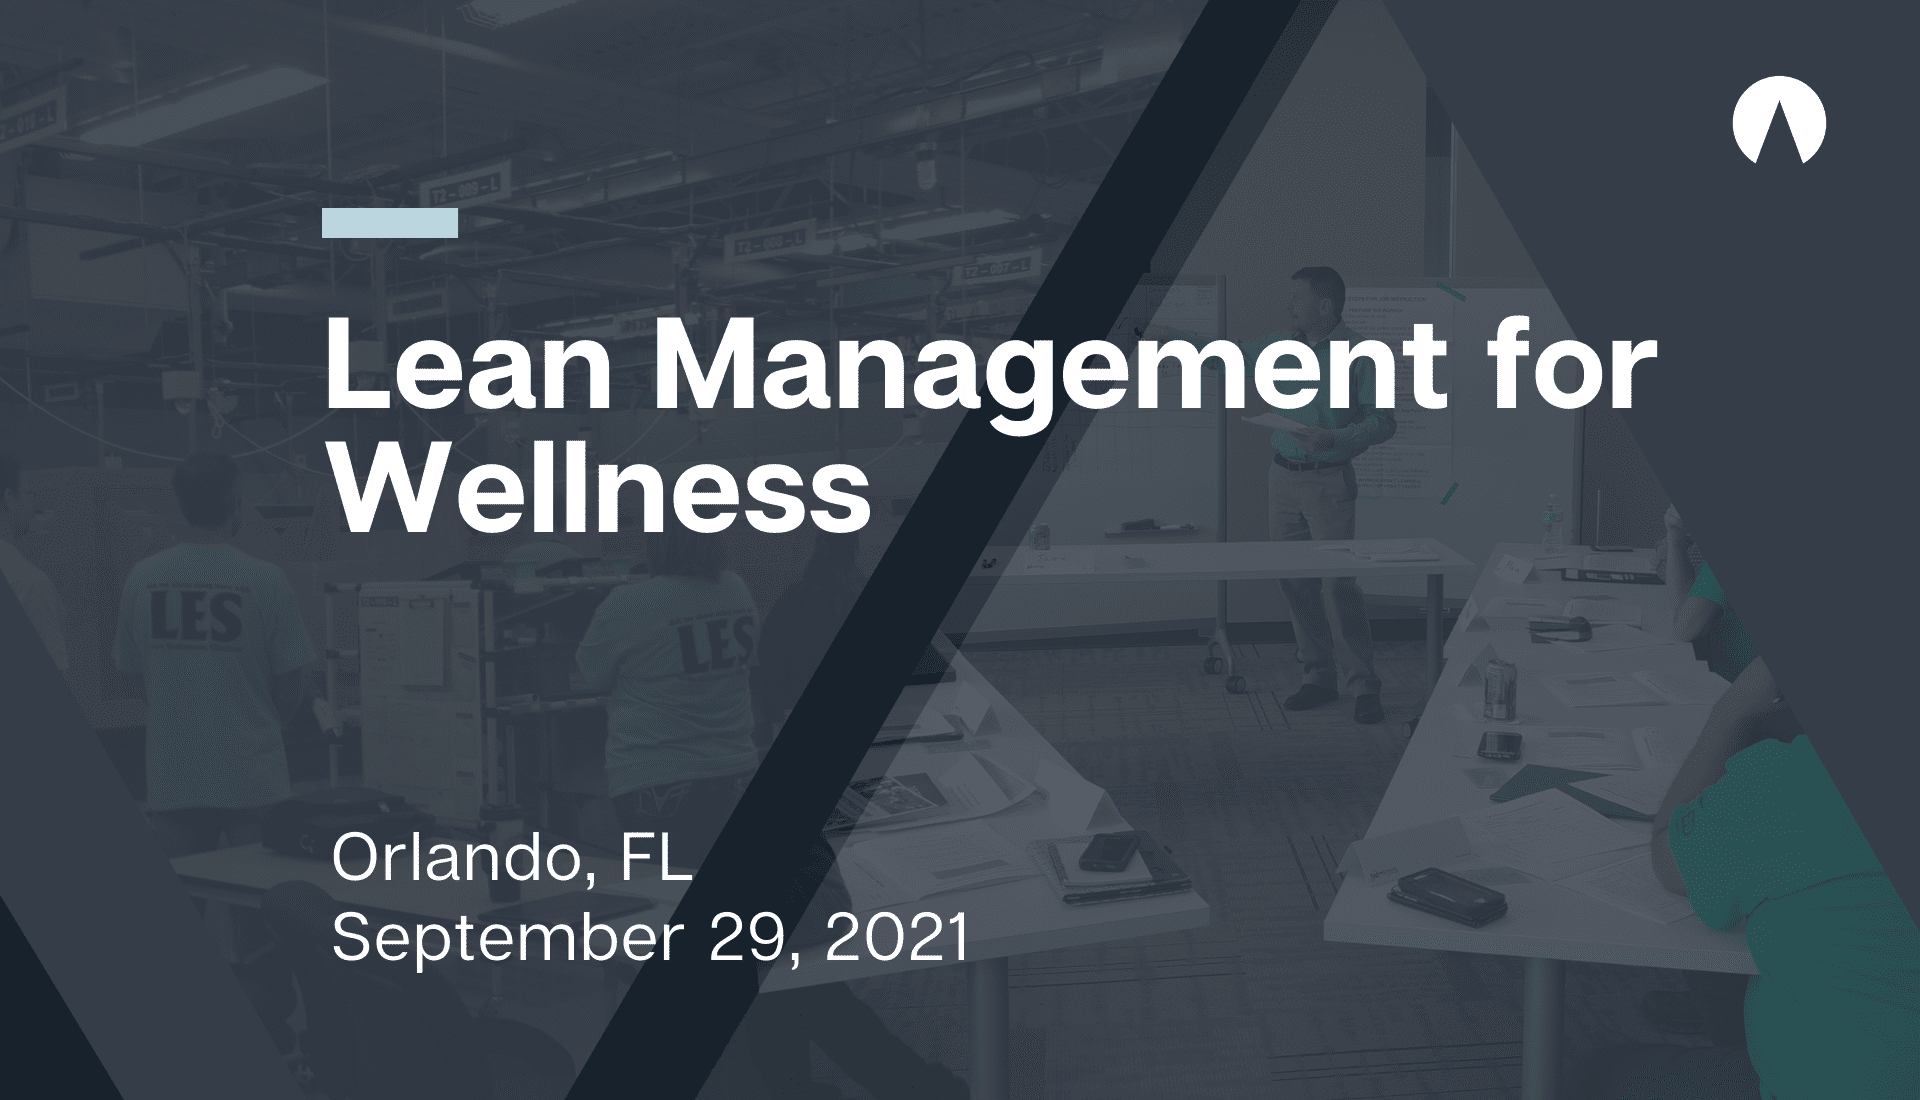 Lean Management for Wellness